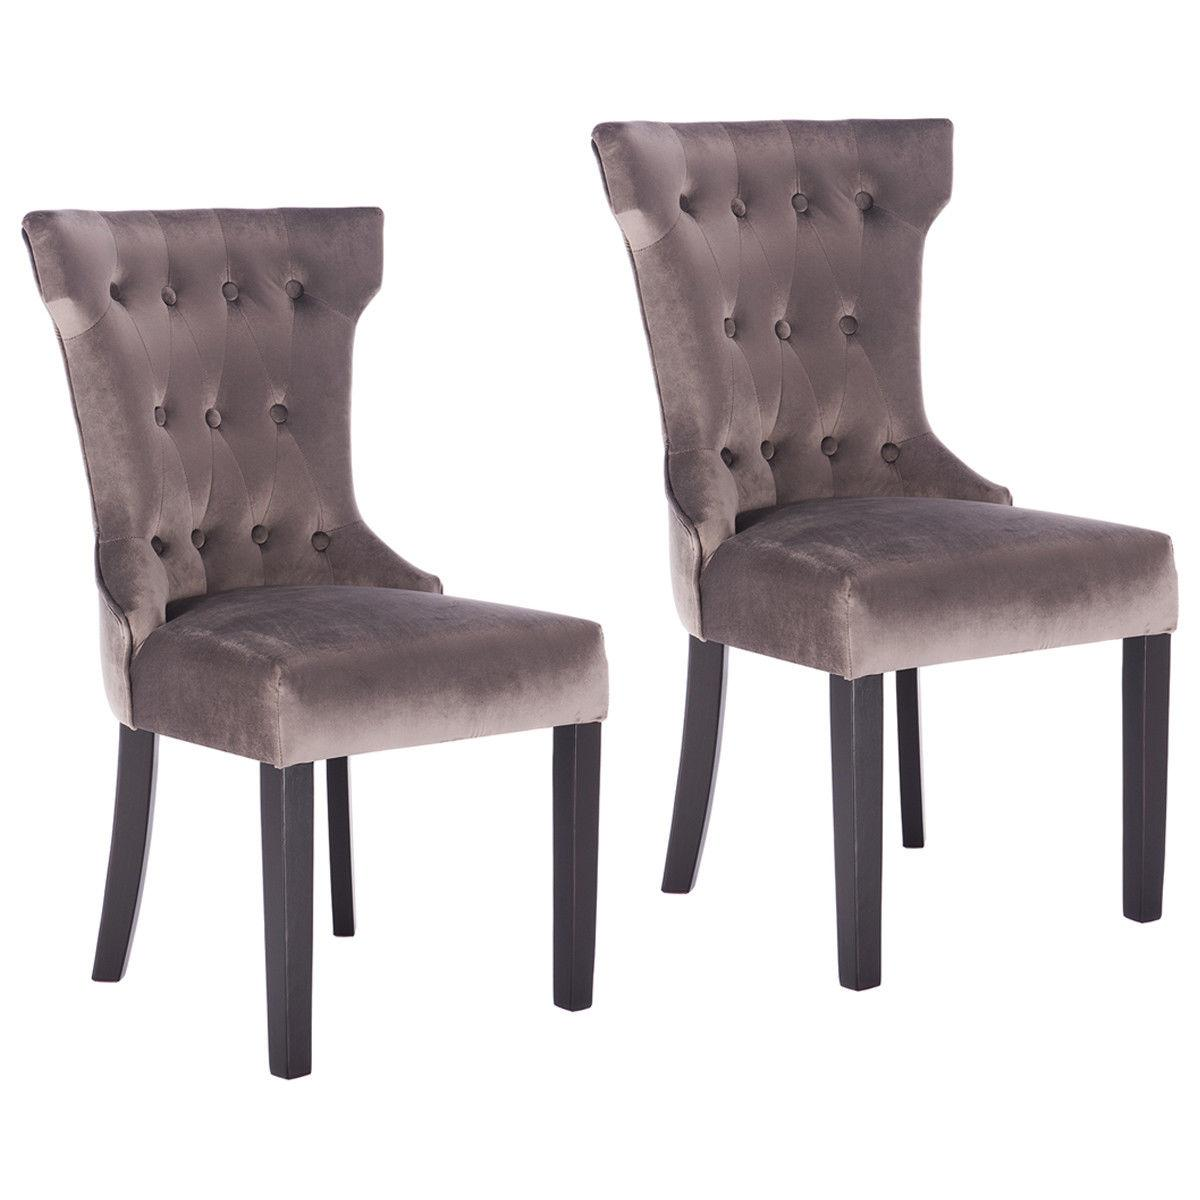 Set of 2 Dining Chair Tufted Upholestered Armless Accent wit